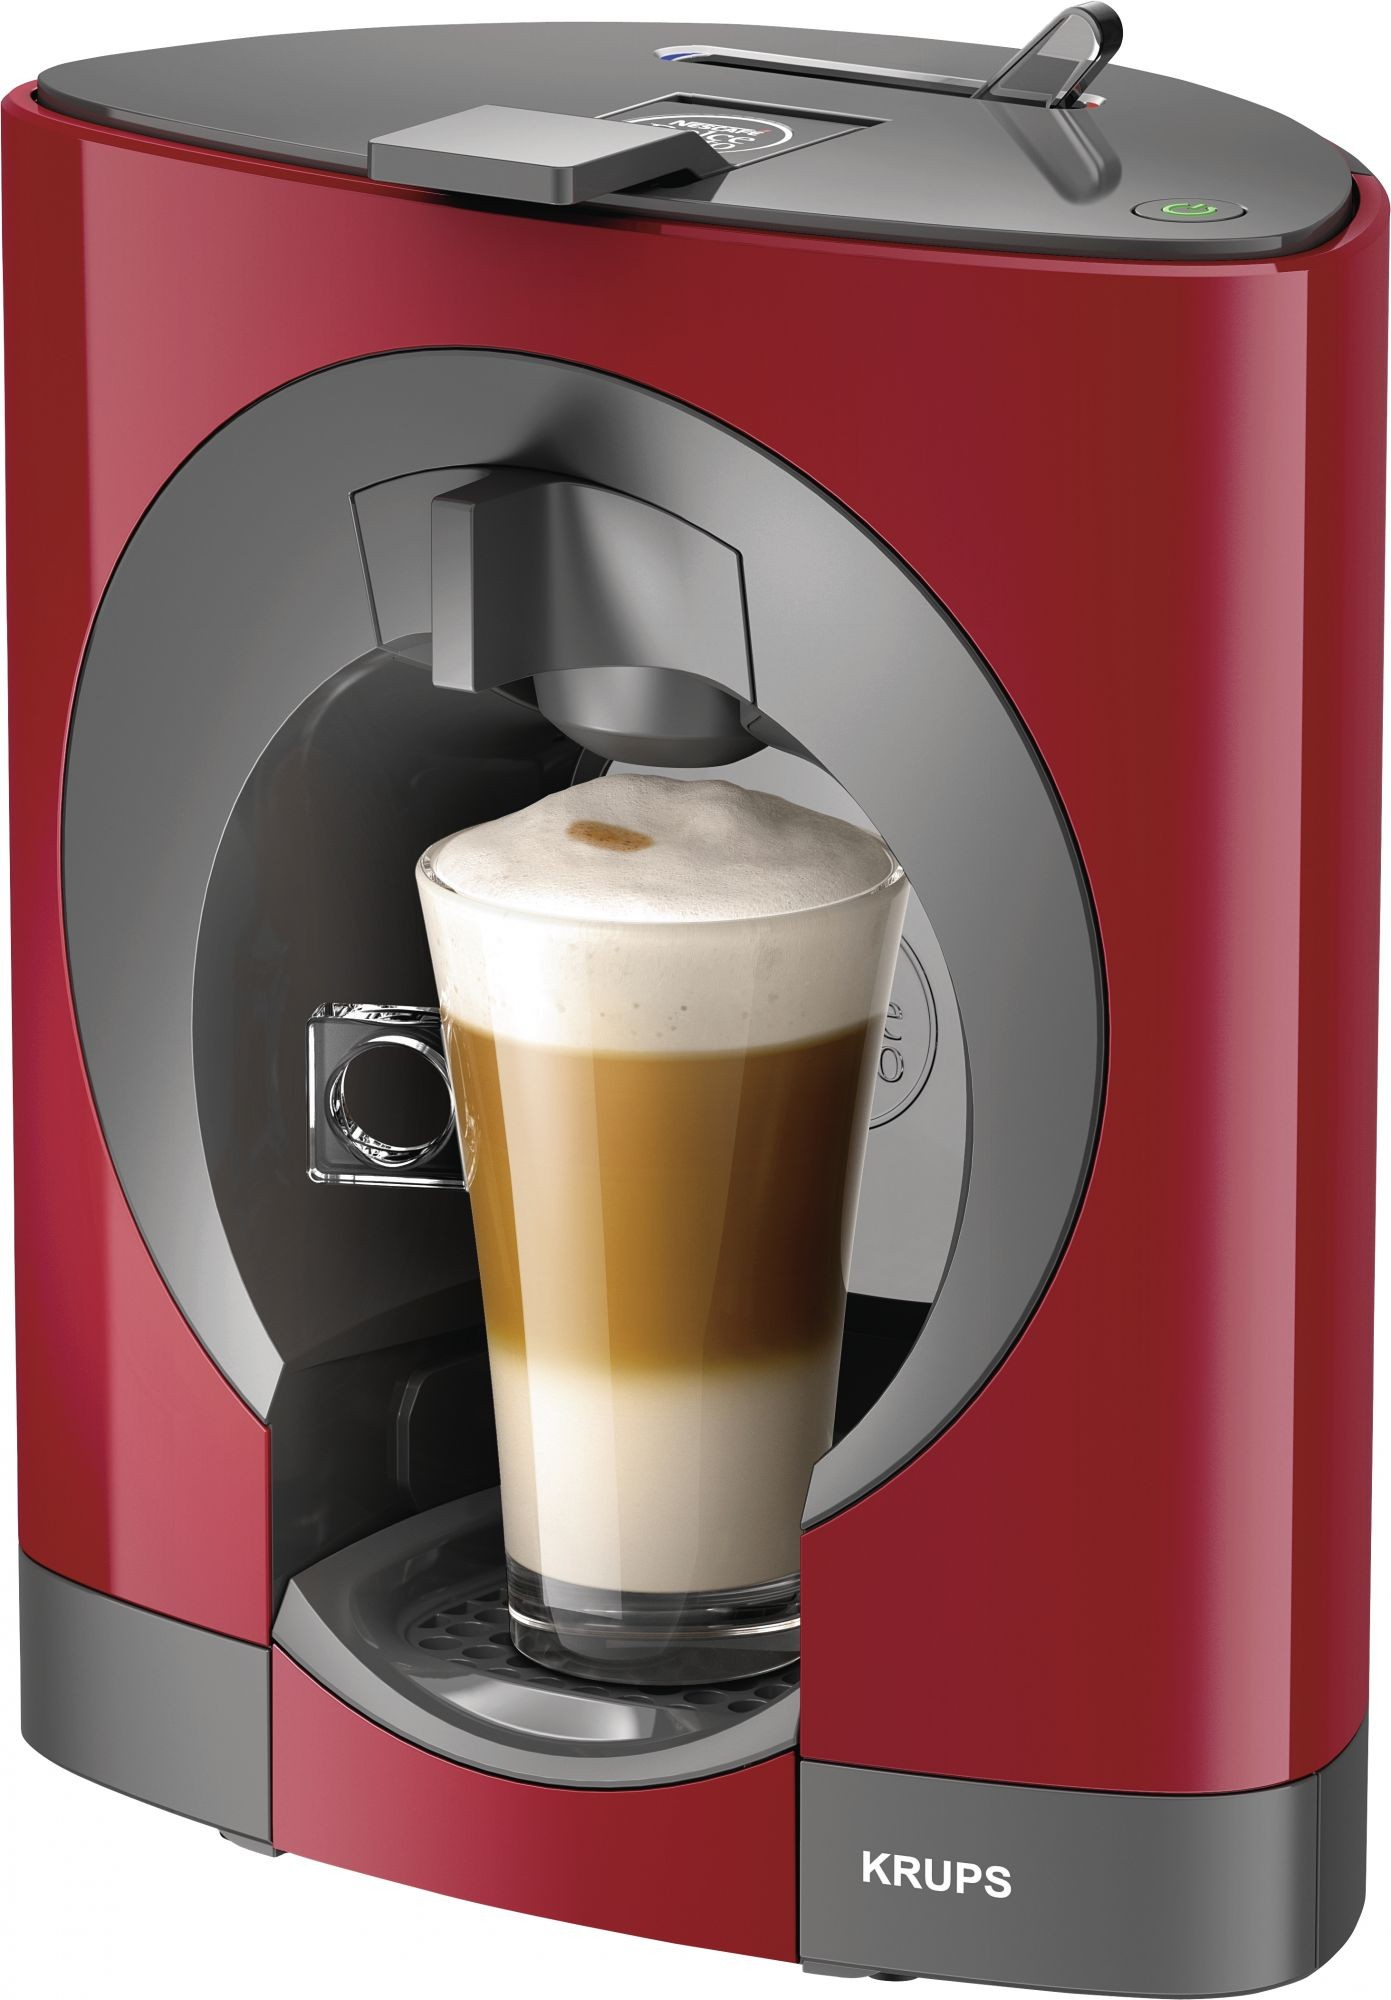 teamsix kp1105 dolce gusto oblo rot krups kaffee kapselautomaten. Black Bedroom Furniture Sets. Home Design Ideas